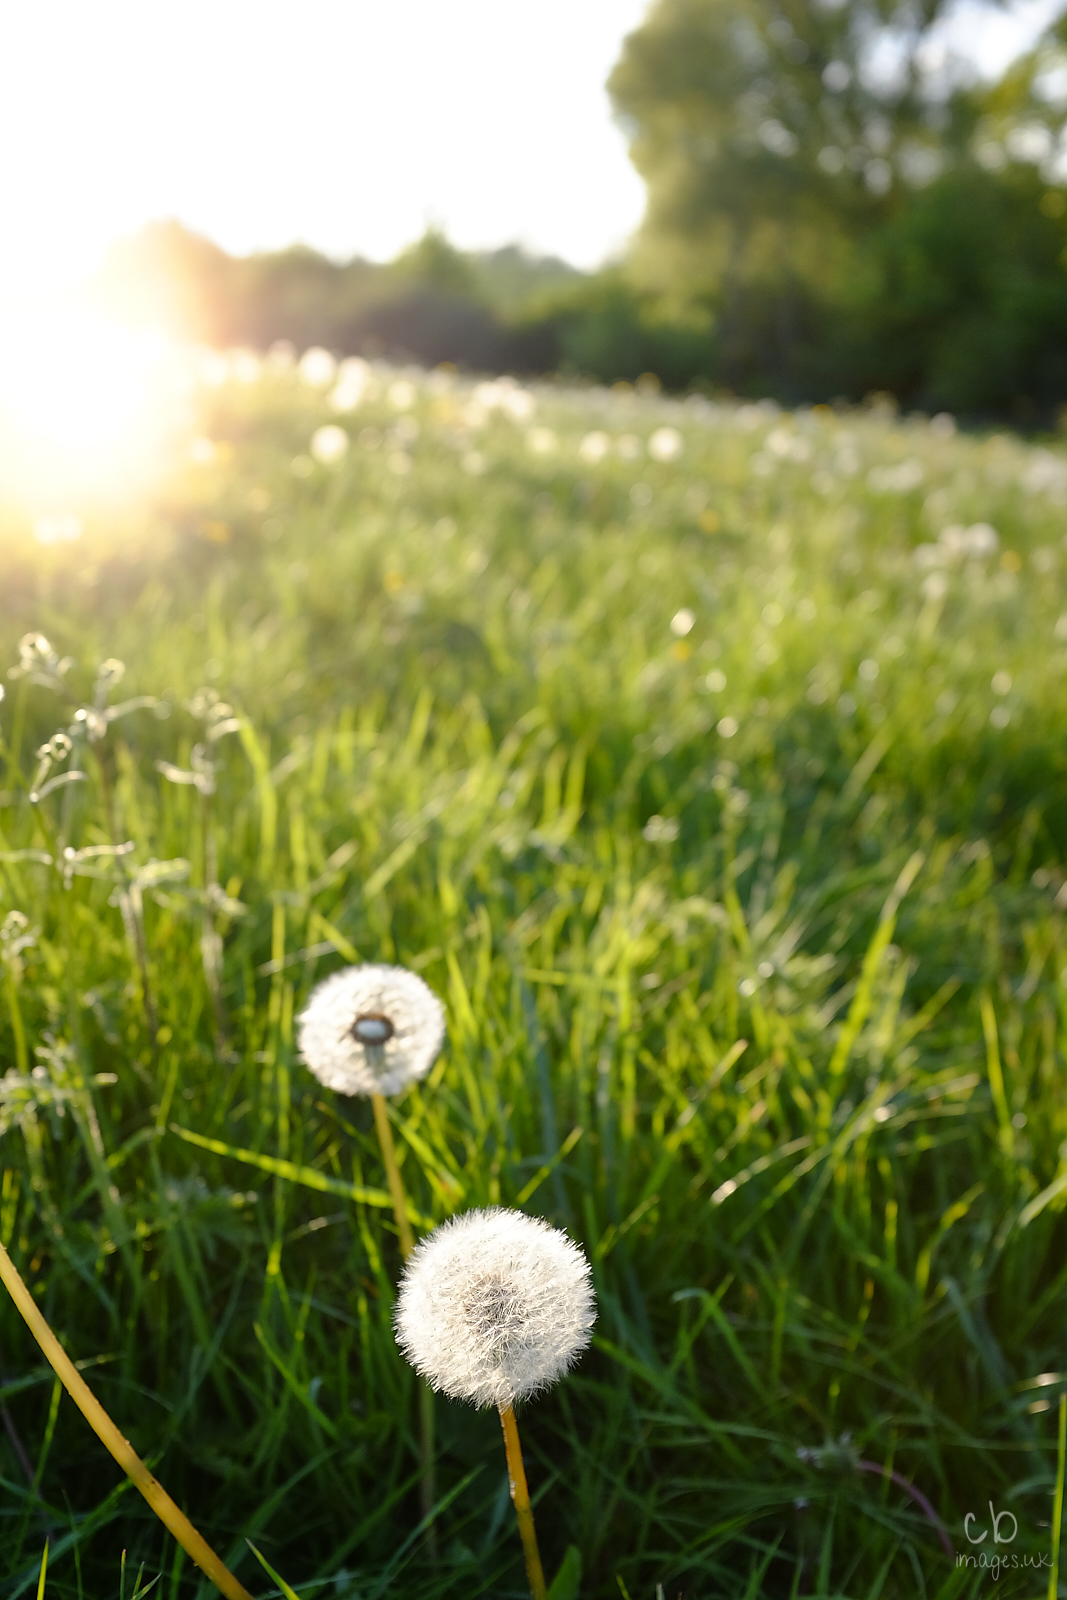 Dandelion clocks with sun setting